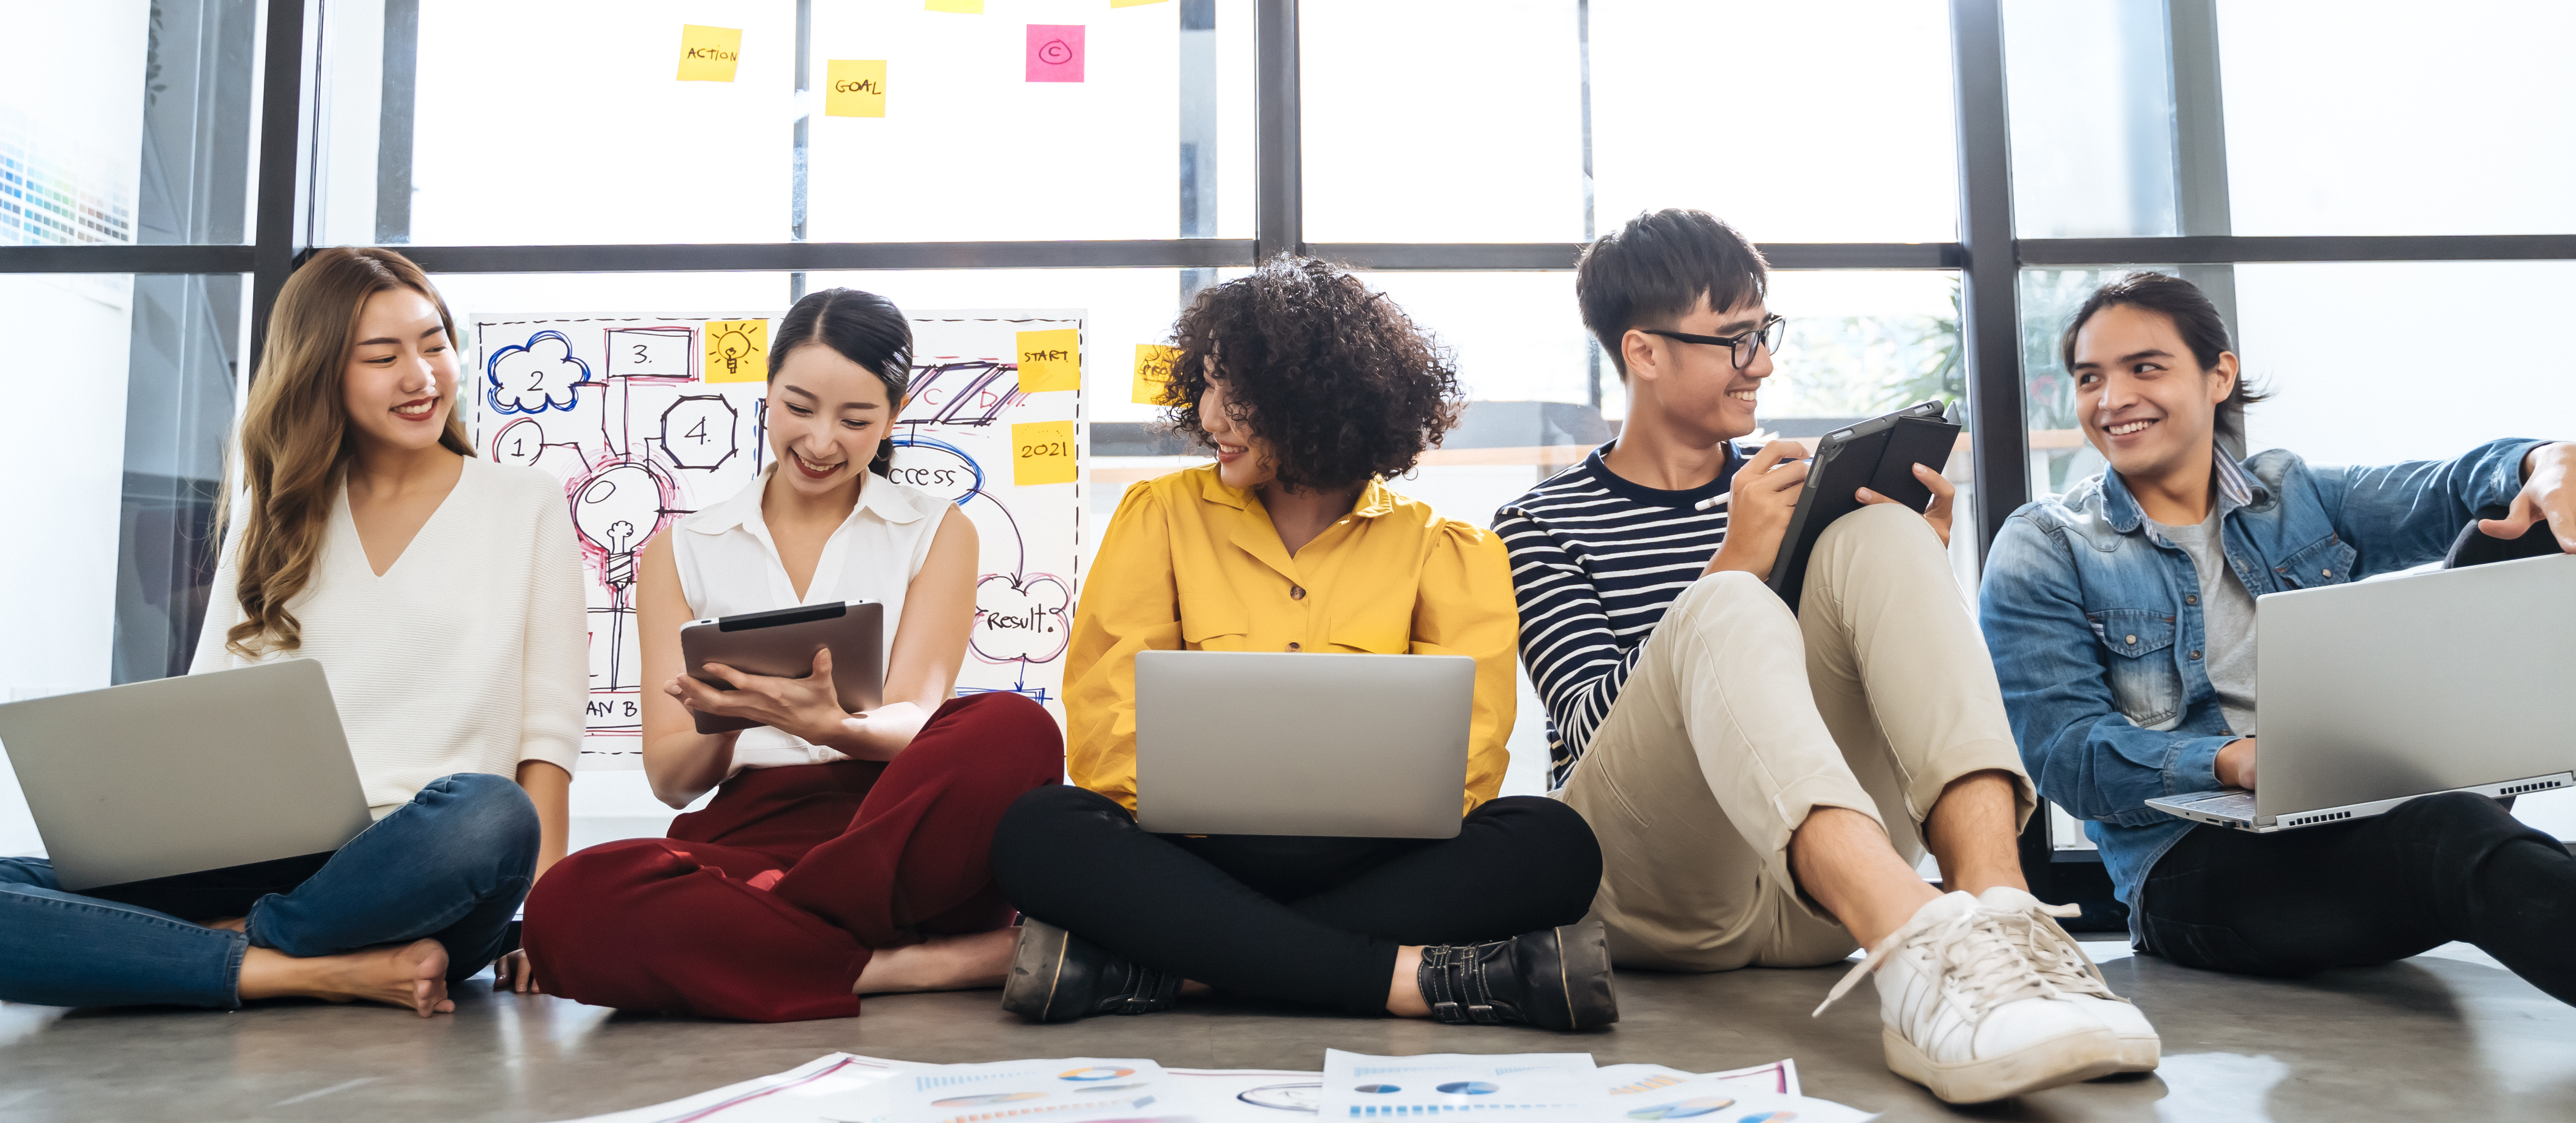 Group of young happy Asian creative business people or hipster student using electronic devices tablet and laptop connection together in modern office. Creative lifestyle young people concept